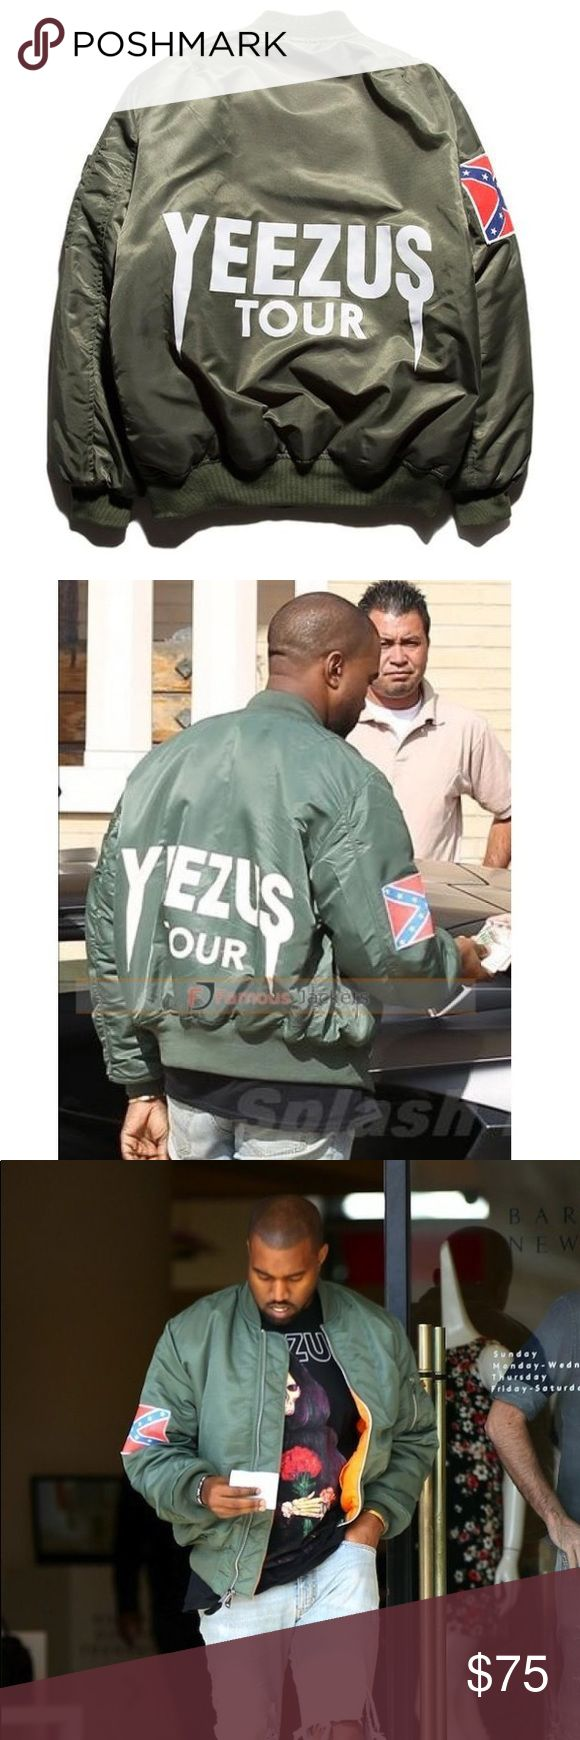 Yeezus Tour Jacket Never worn. Received as a gift . Too big for me. Yeezy Jackets & Coats Performance Jackets